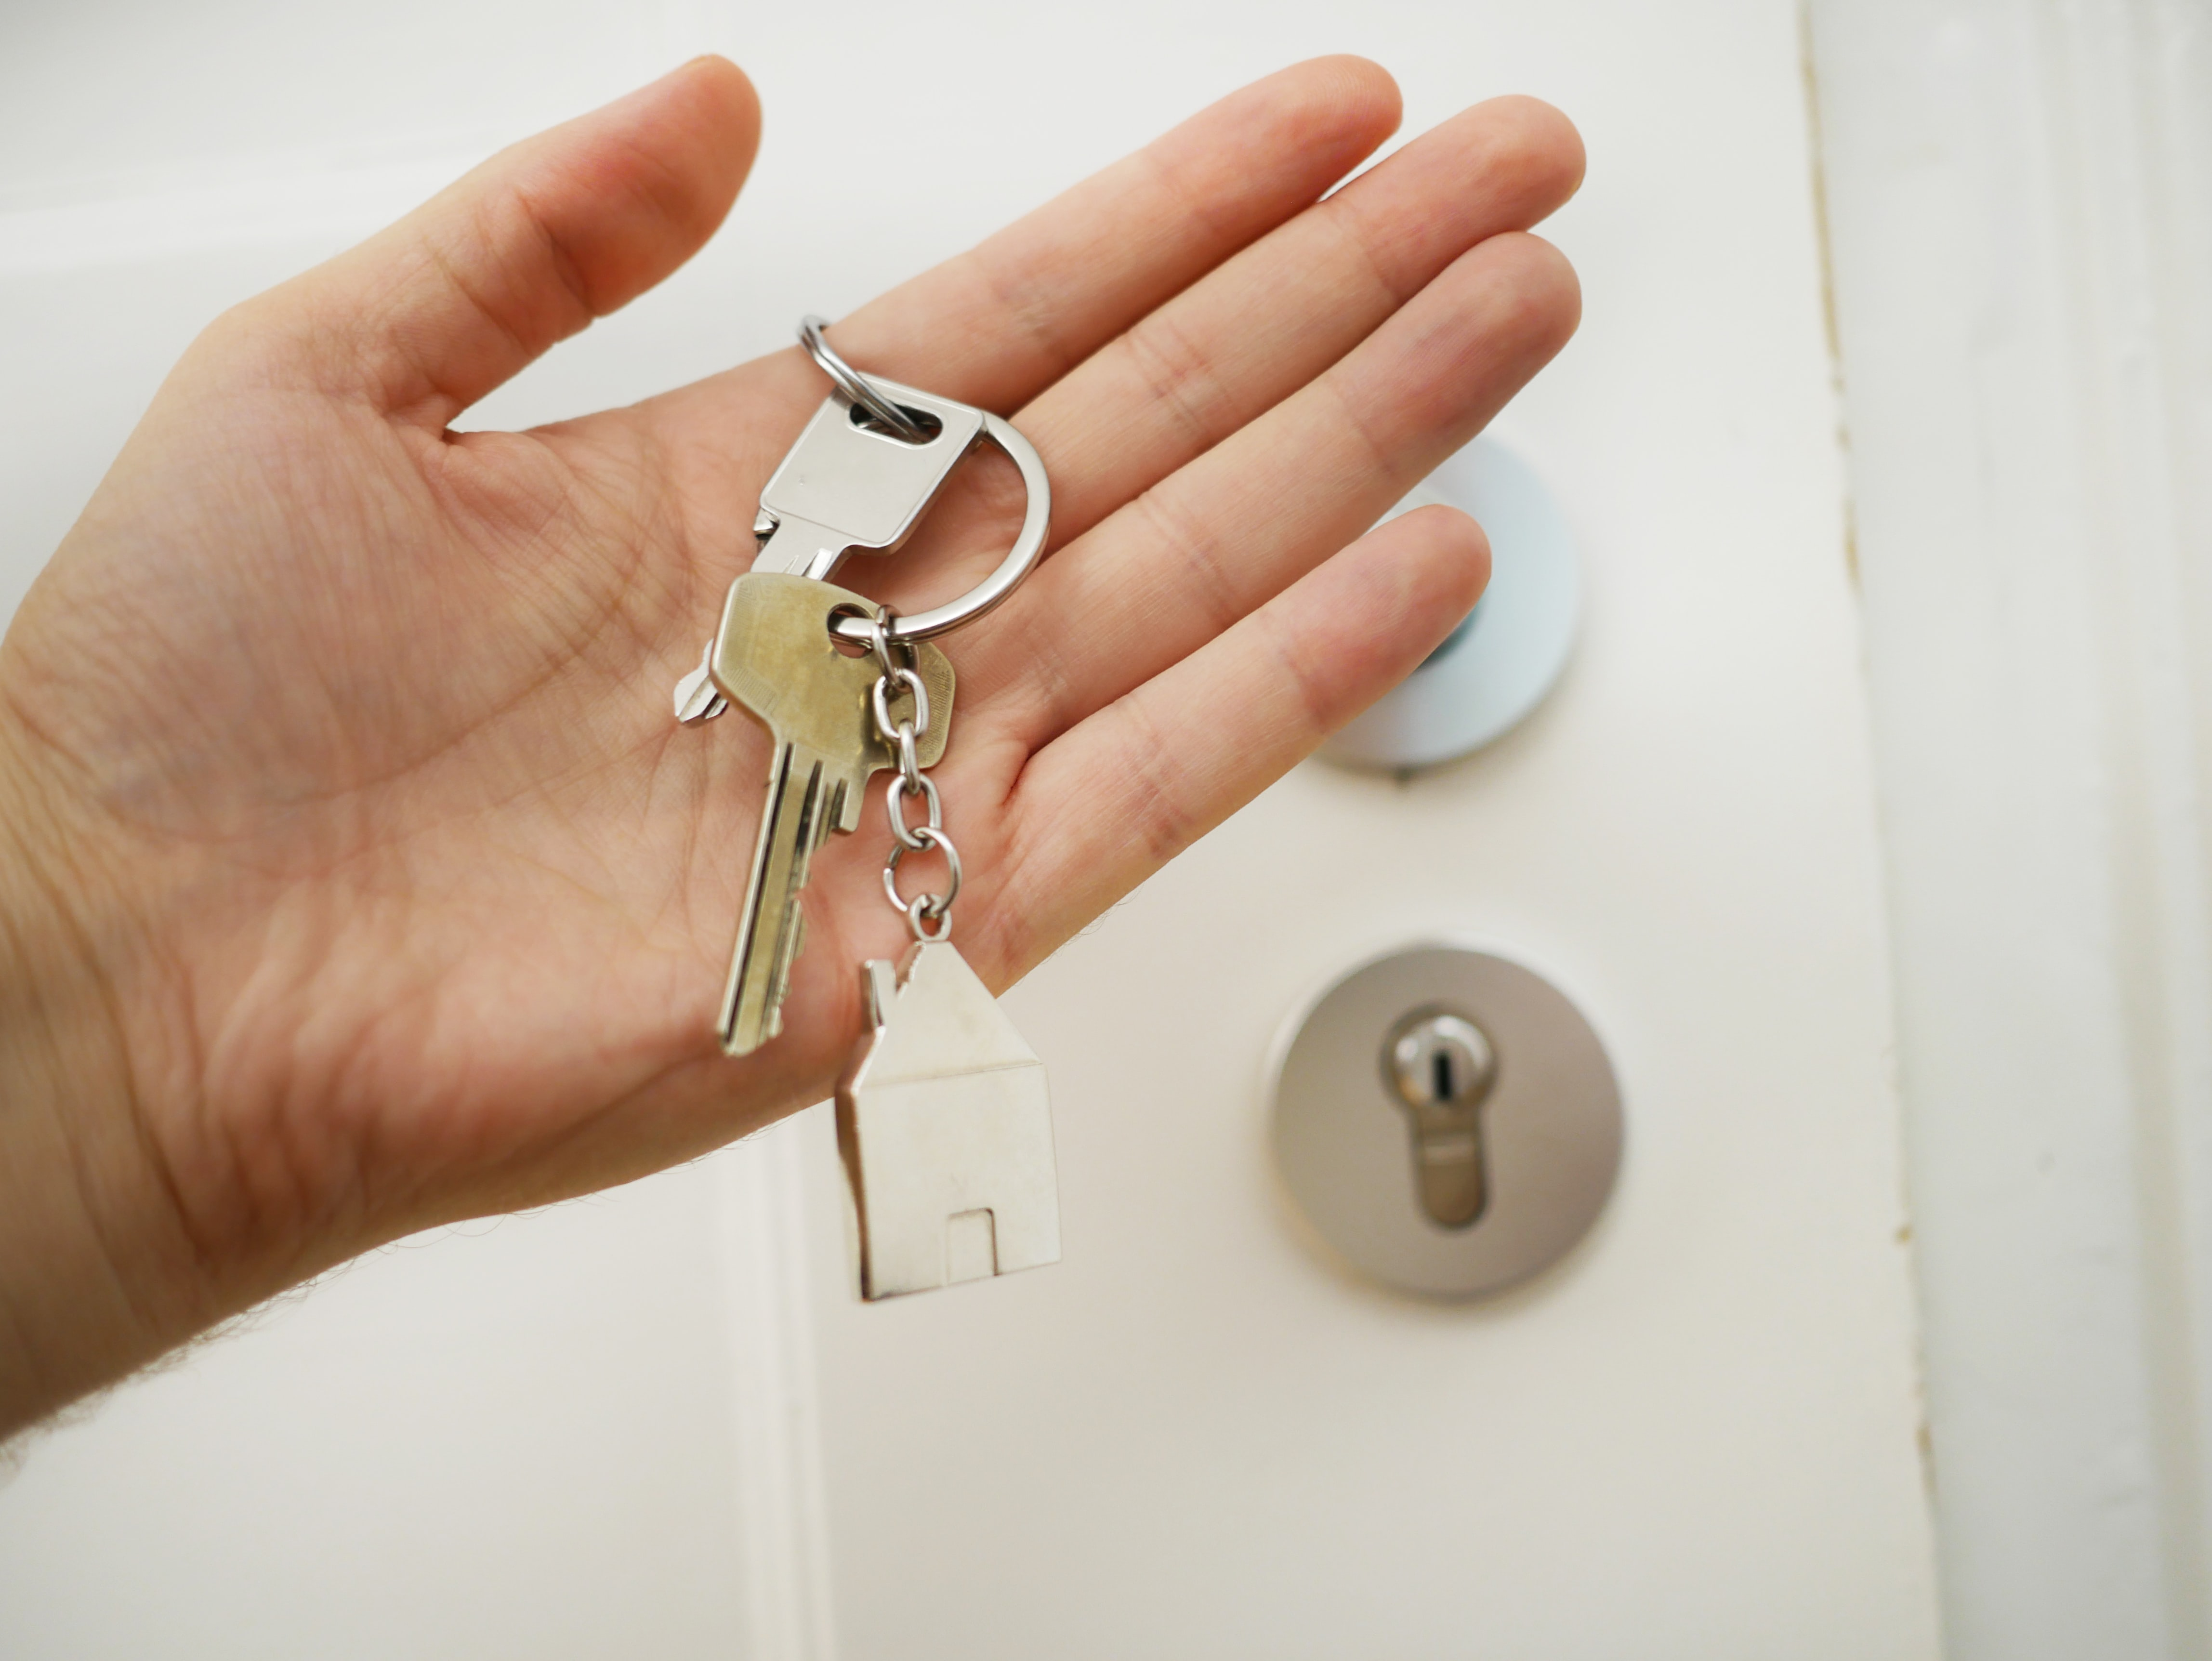 How to Find the Right Locksmith Service Provider?